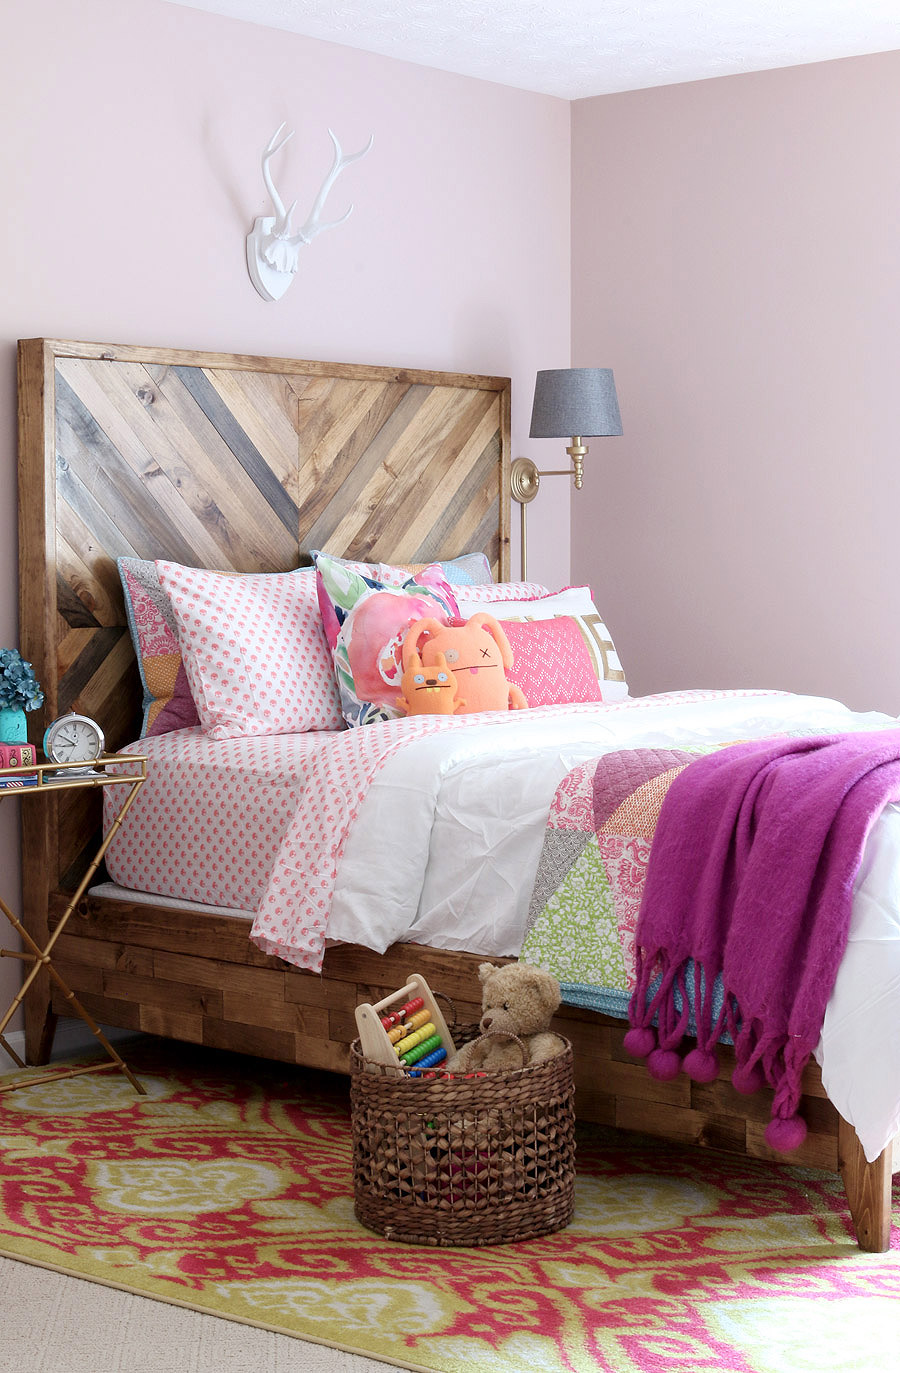 6 diy headboards you can make yourself headboard design - Make your own headboard ...